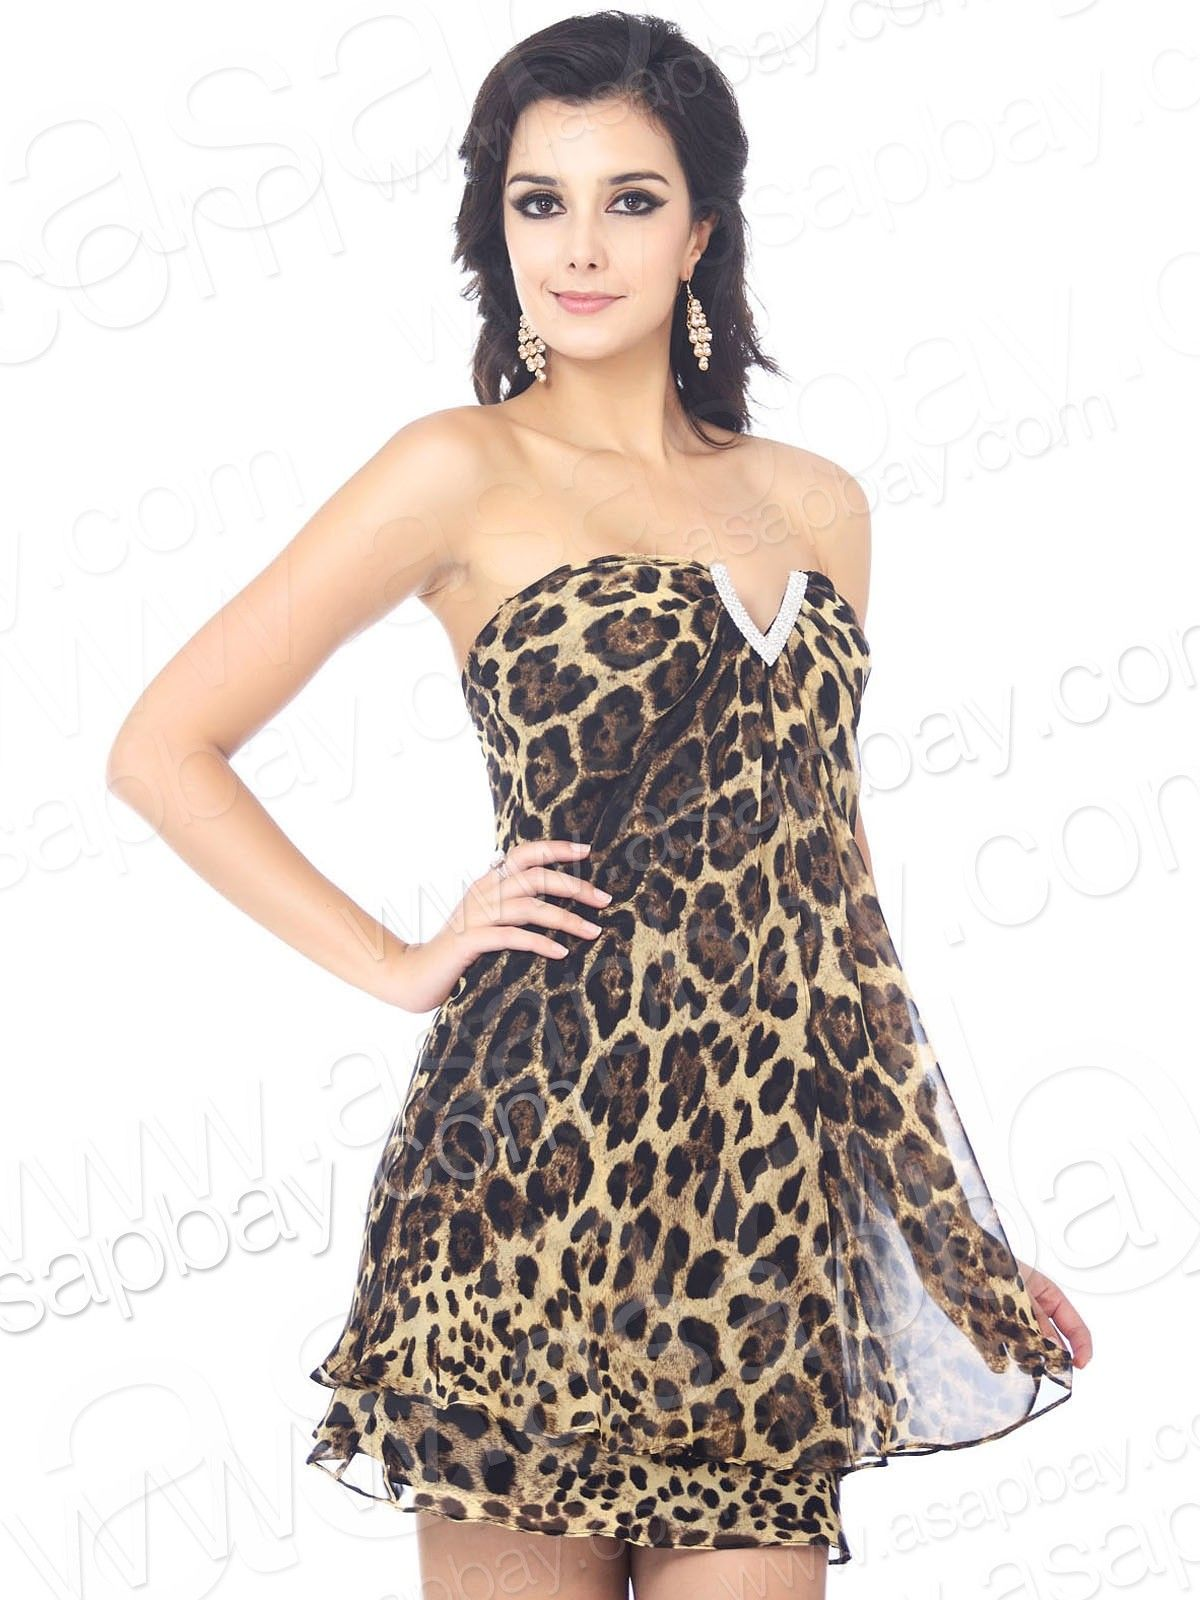 Animal Print Cocktail Dresses - Ocodea.com